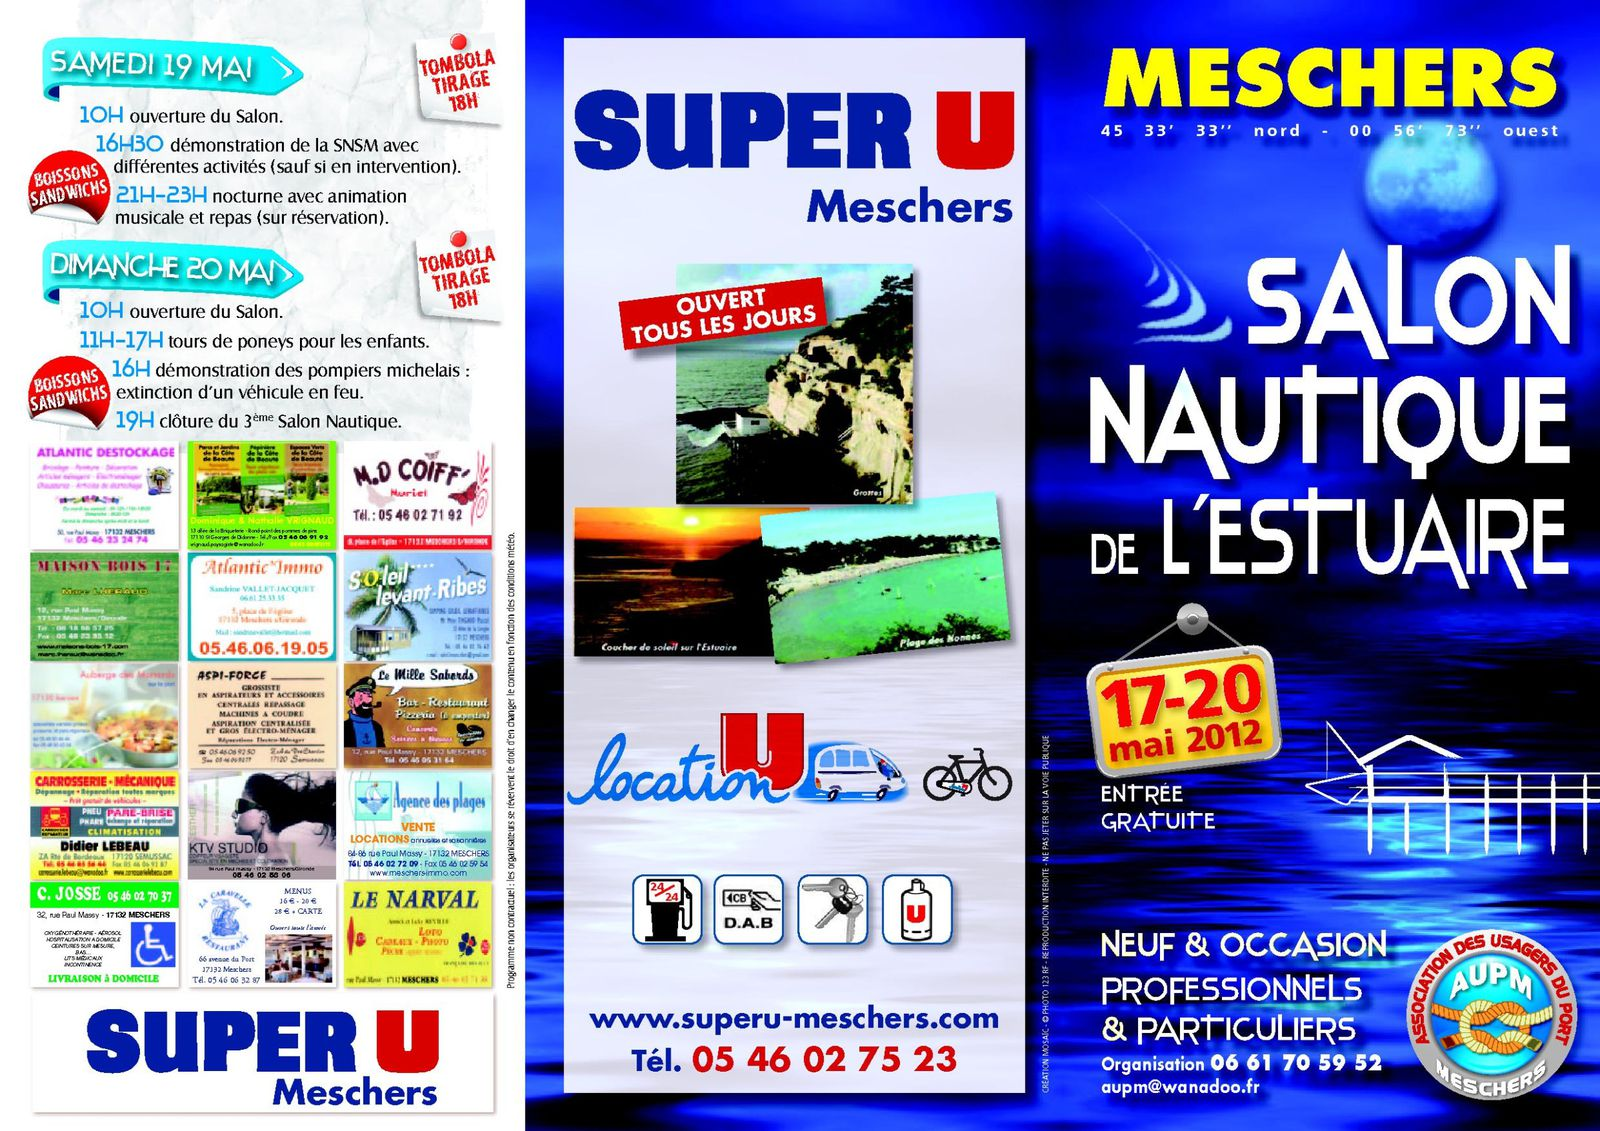 201205 salon nautic Prog recto